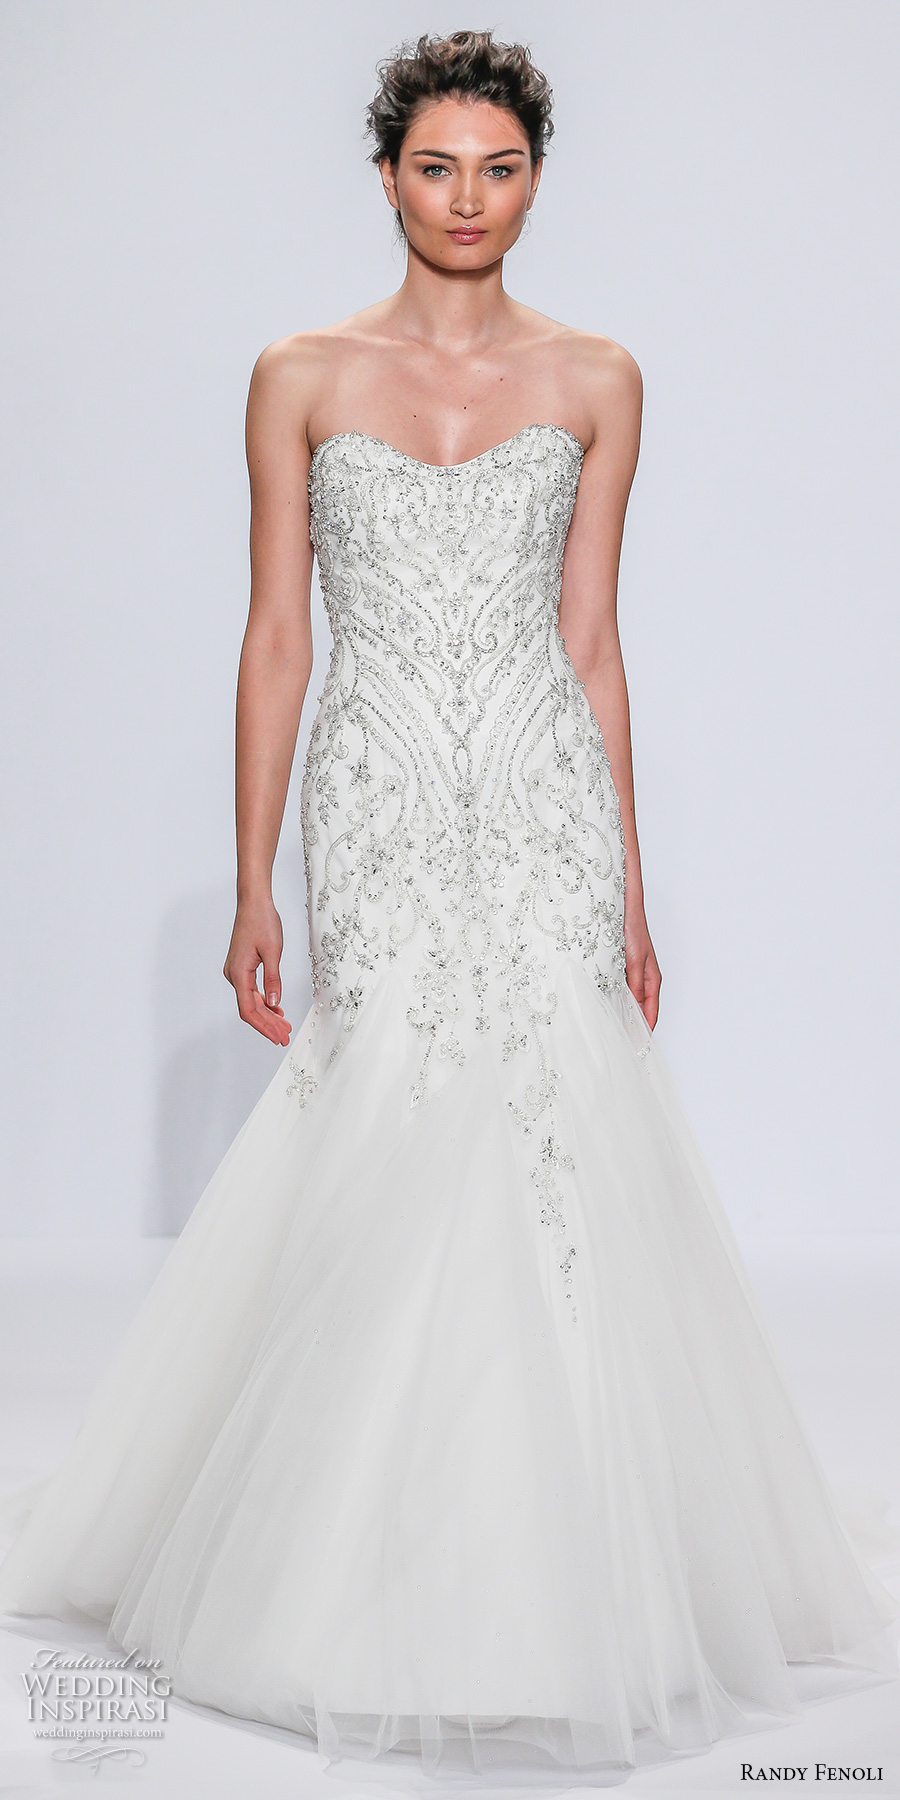 randy fenoli spring 2018 bridal strapless semi sweetheart neckline heavily embellished bodice beaded tulle skirt mermaid wedding dress chapel train (13) mv